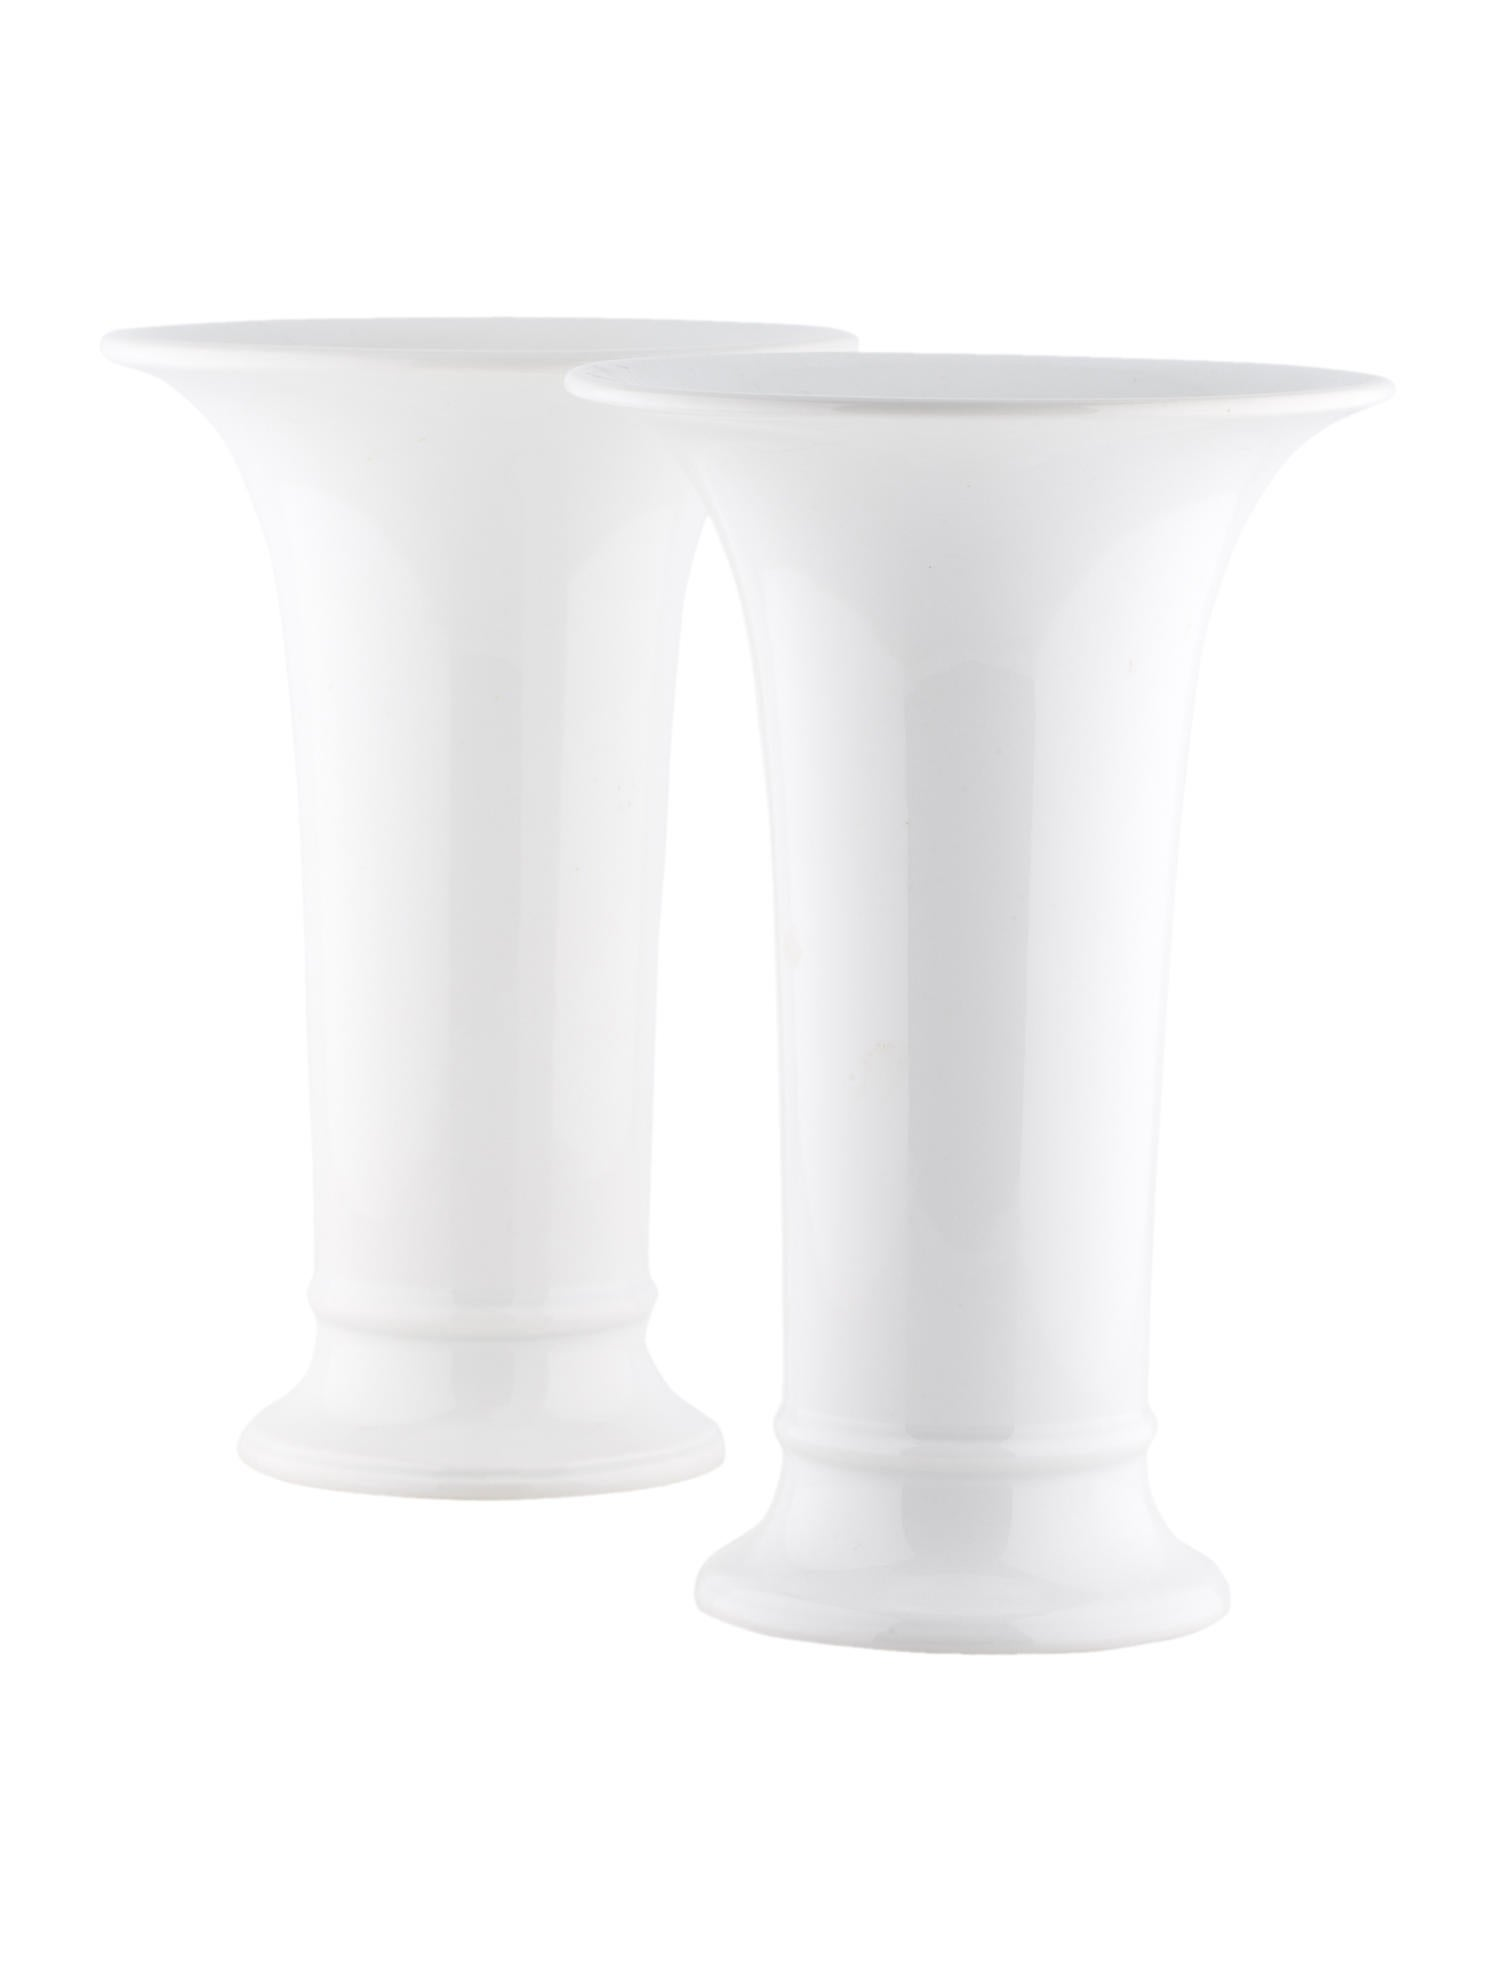 KPM Berlin Tall Porcelain Vases Decor And Accessories